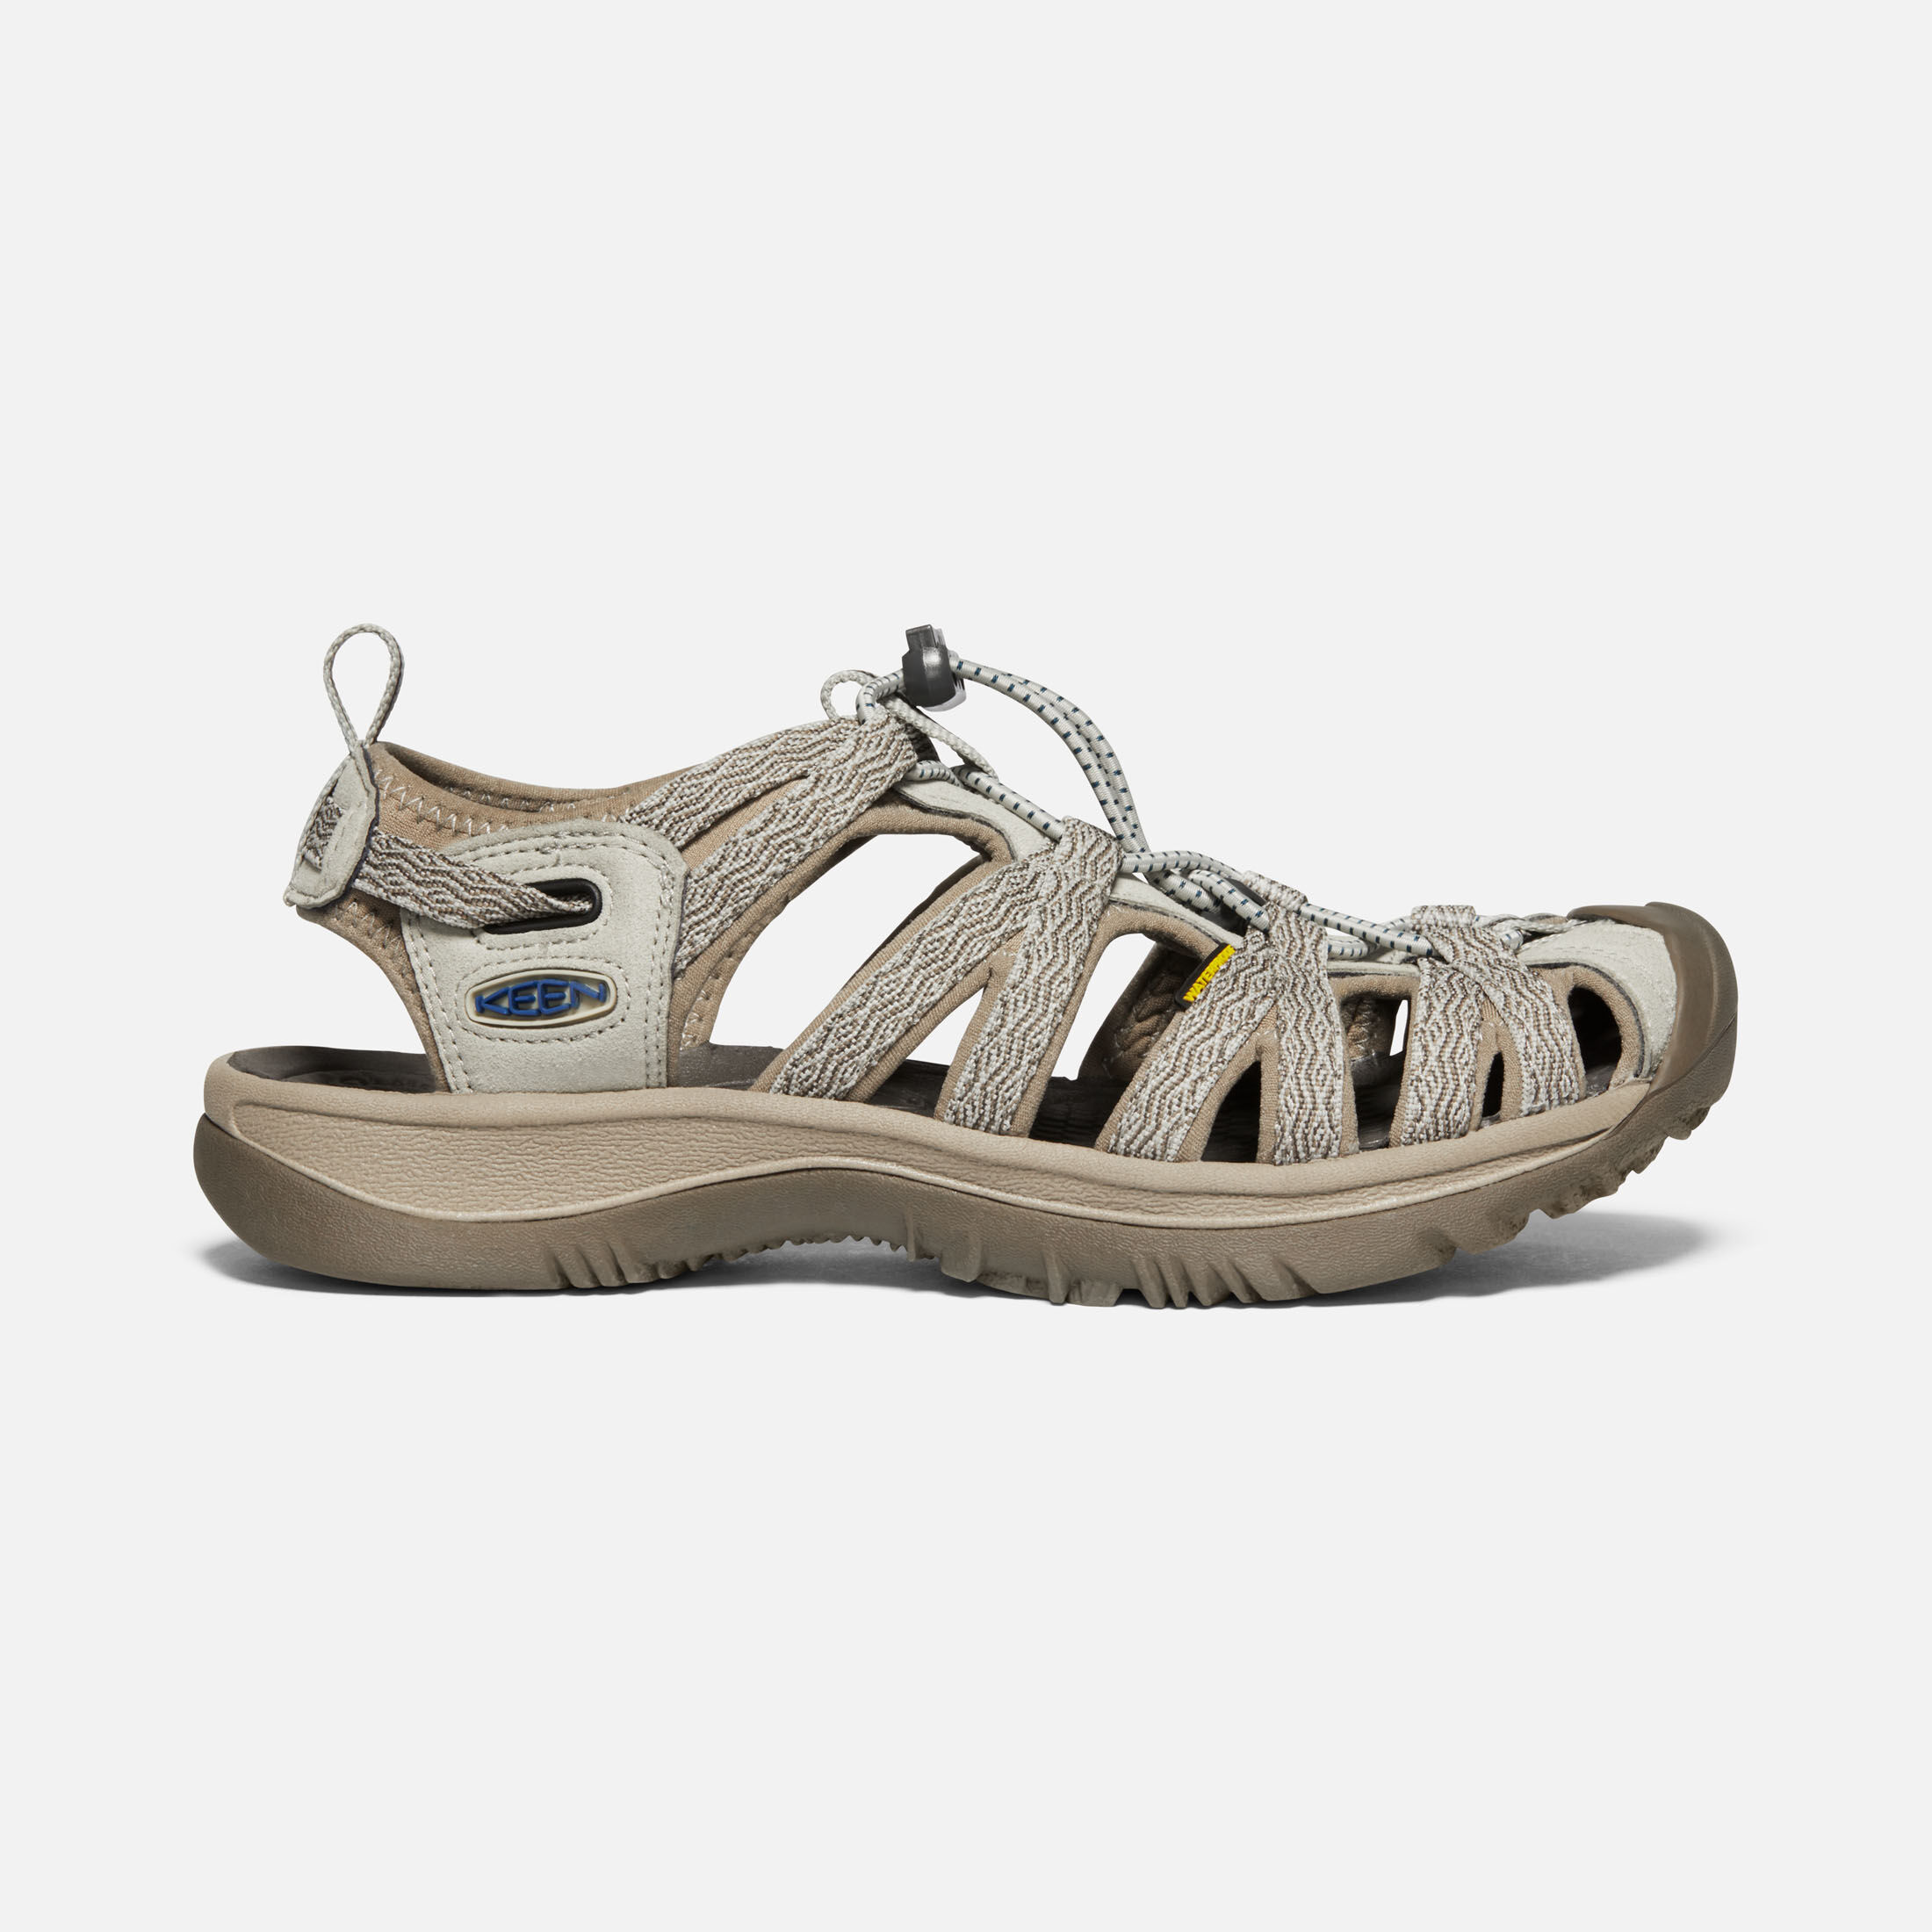 9 8 Brown Beach Sandals Shoes Boys Slip Resistant Leather Lining 7 10 RUUM